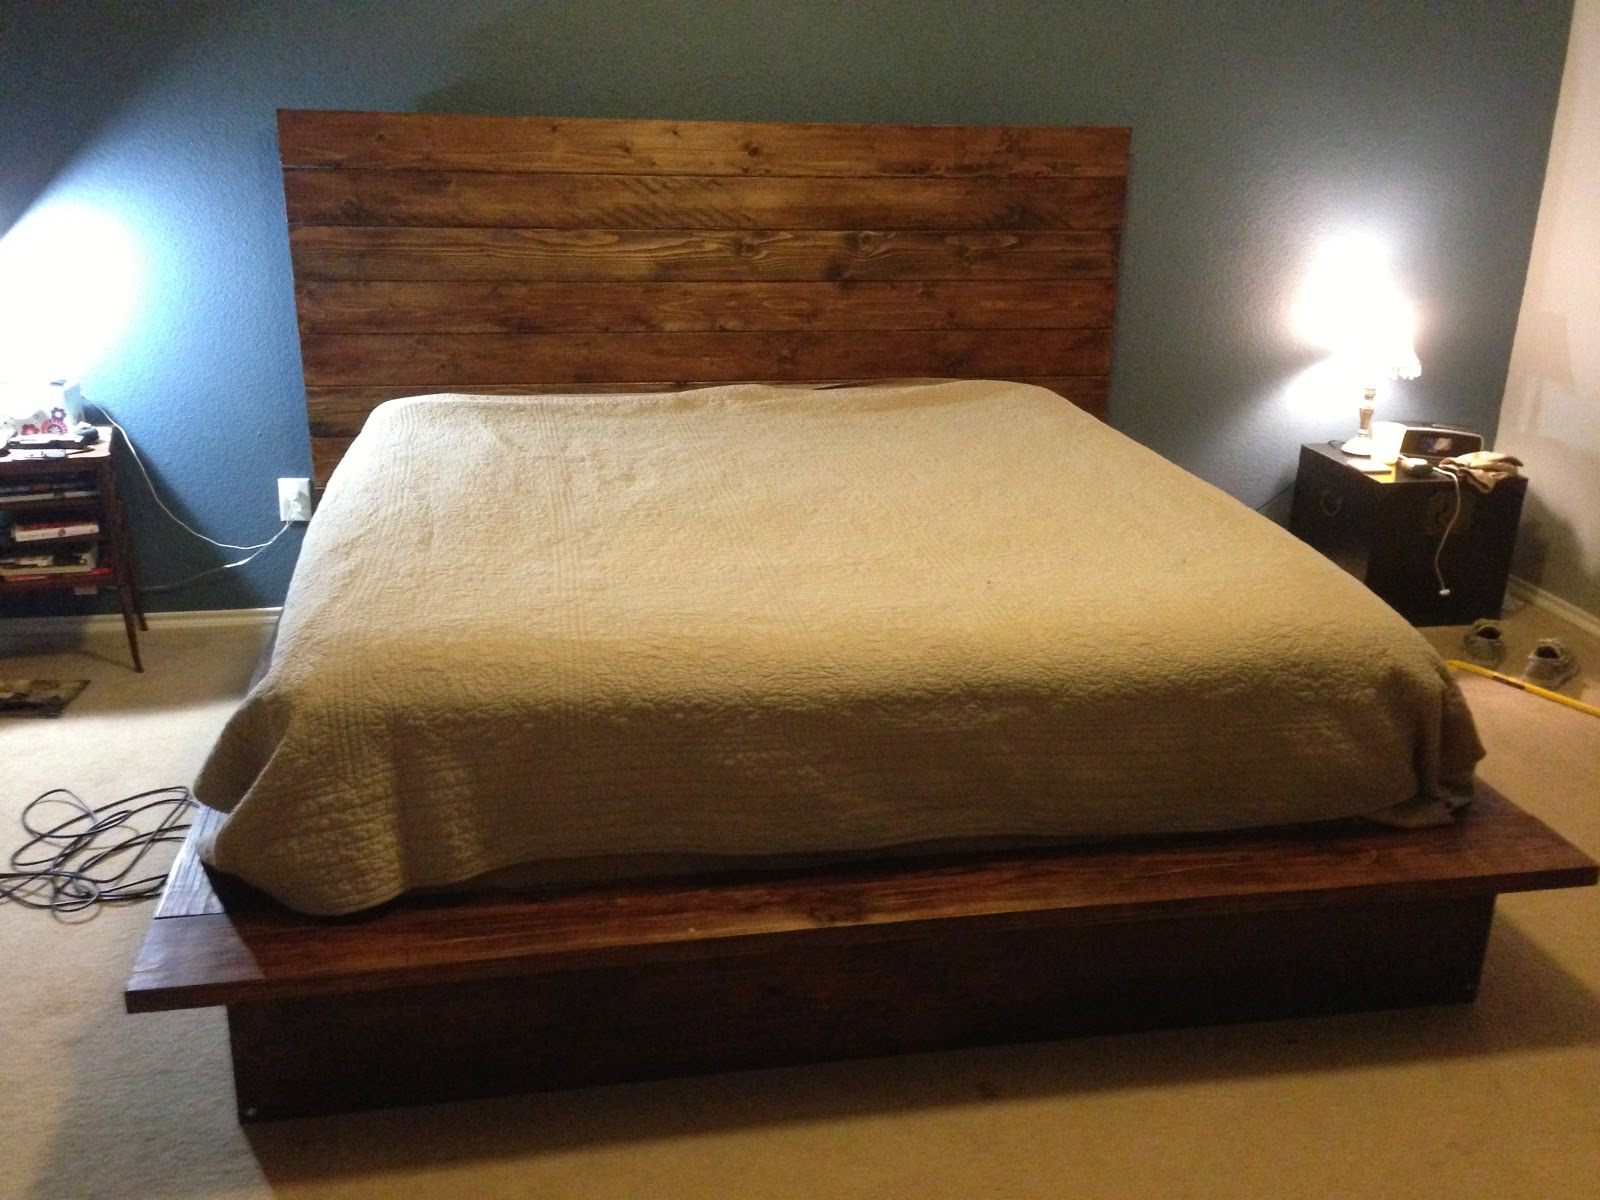 Fire fly fisherman diy bed frame for Simple bed diy